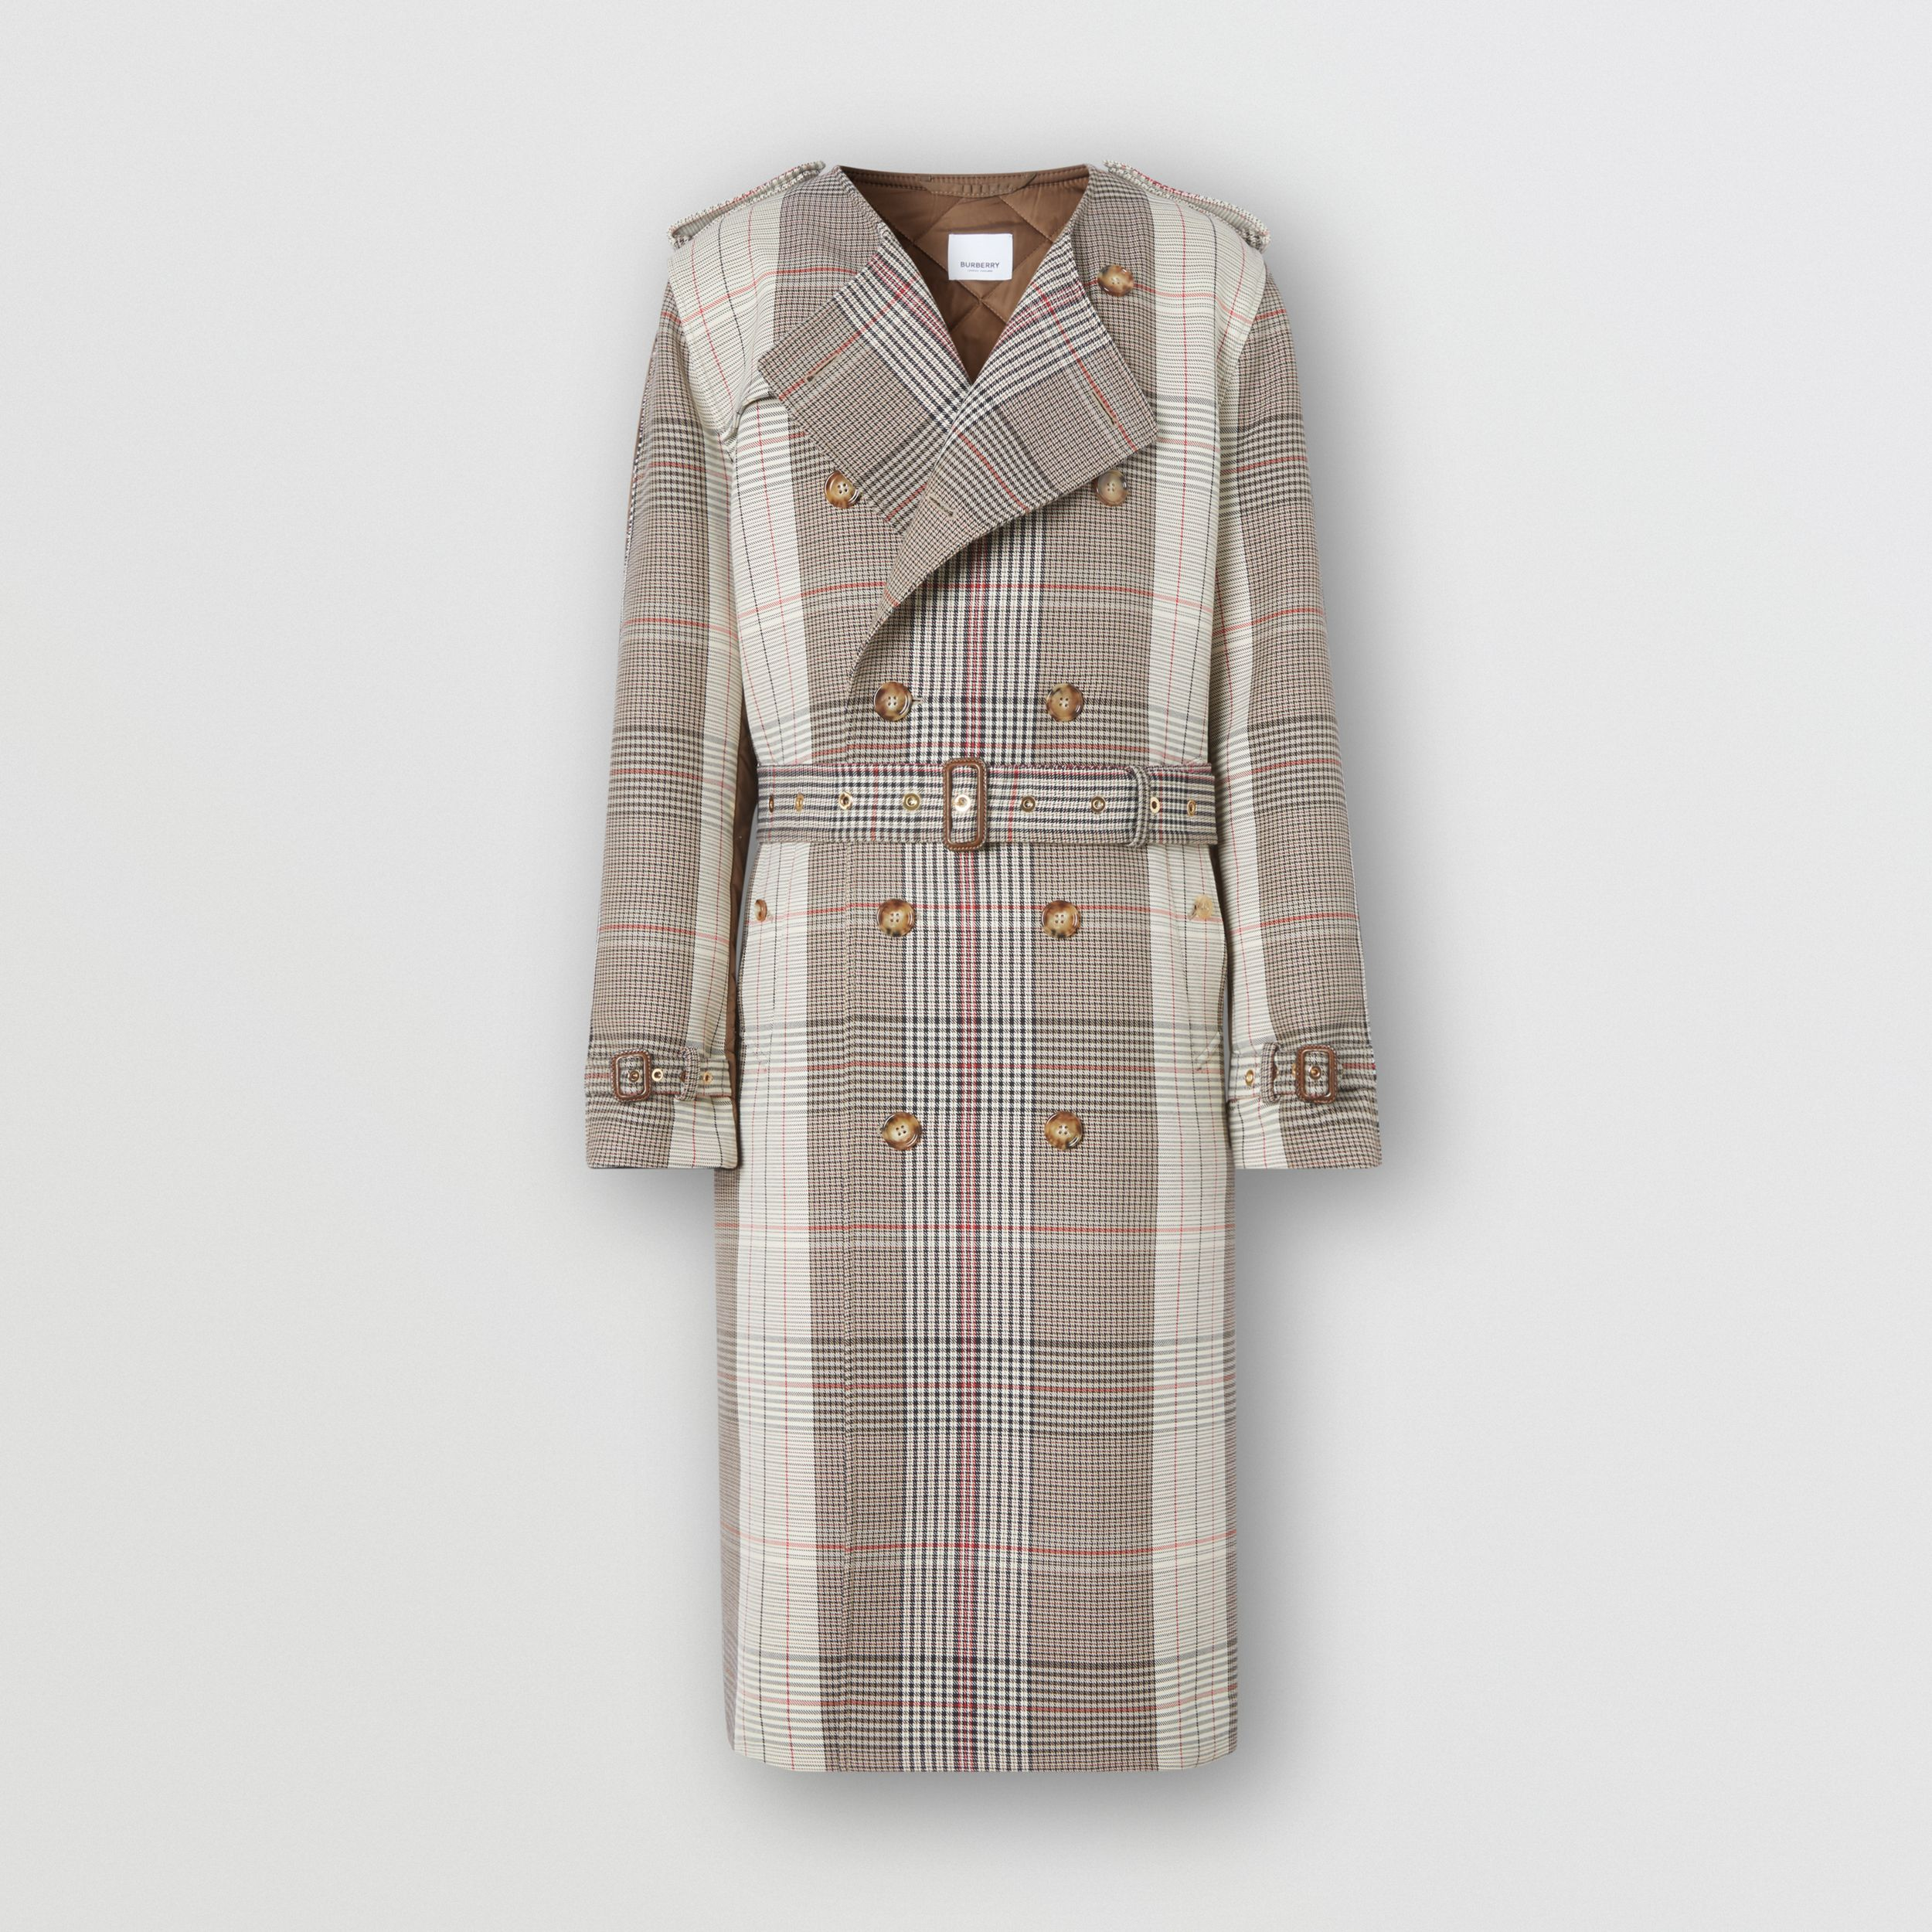 Quilted Panel Check Wool Cotton Trench Coat in Beige - Men | Burberry United Kingdom - 4